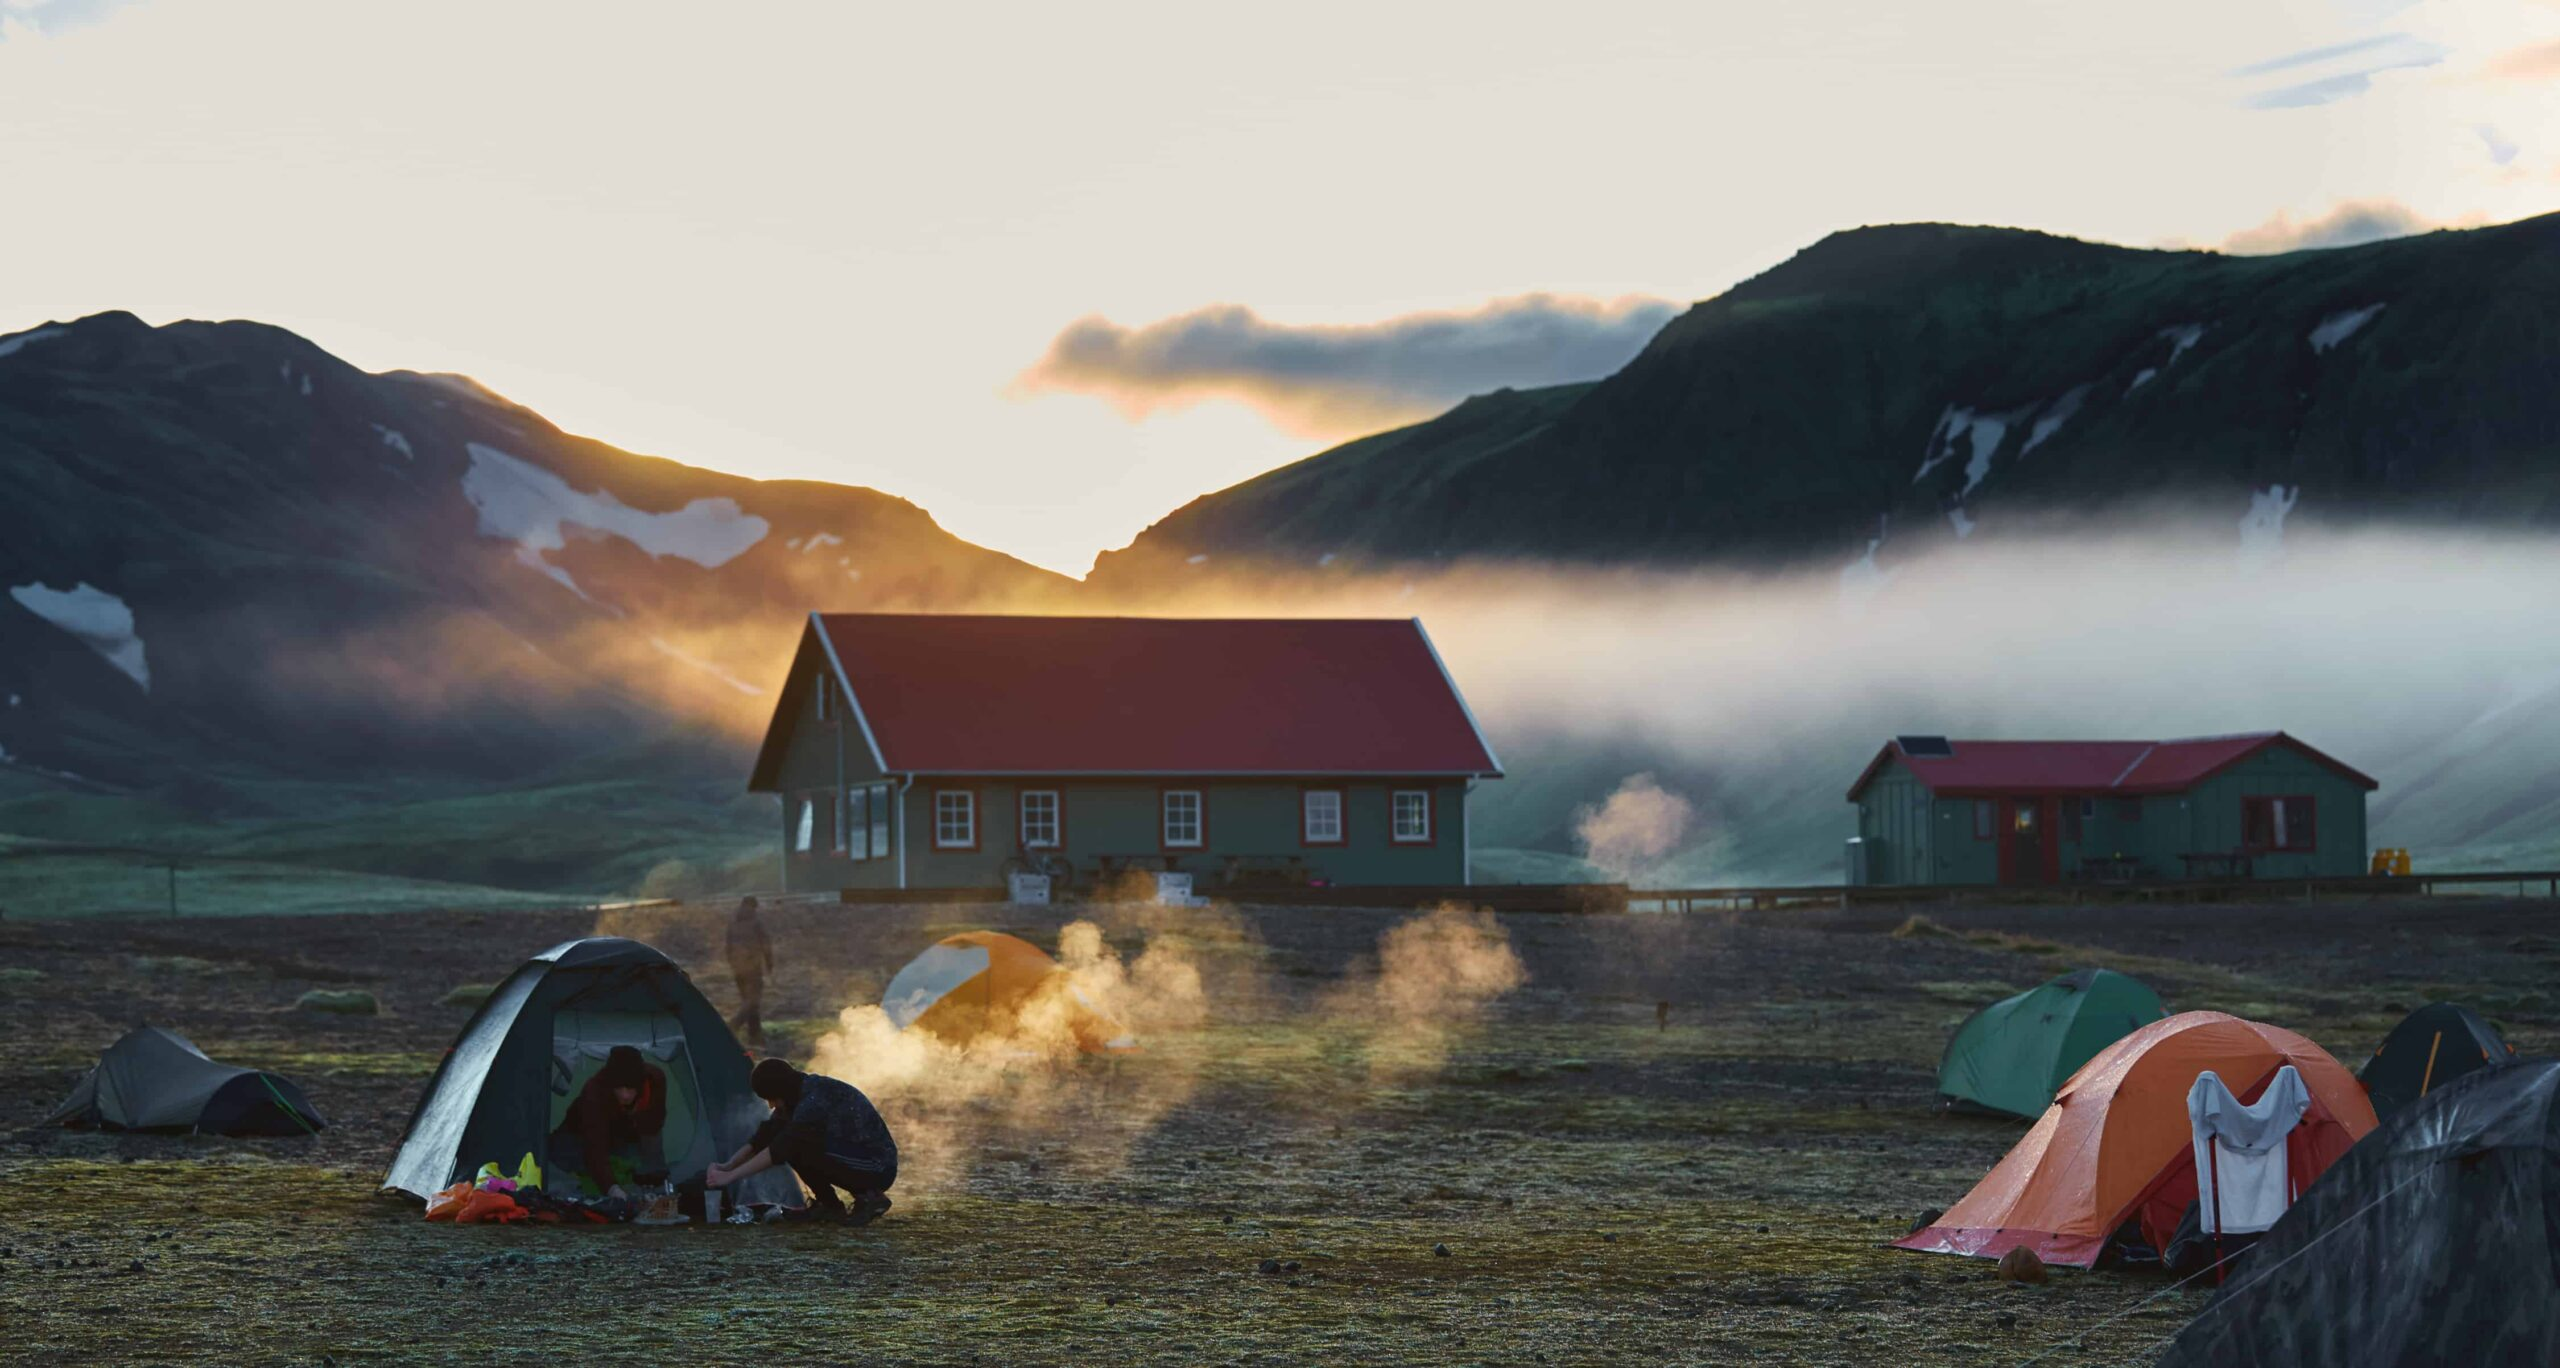 huts in the Laugavegur hiking trail in the highlands of Iceland